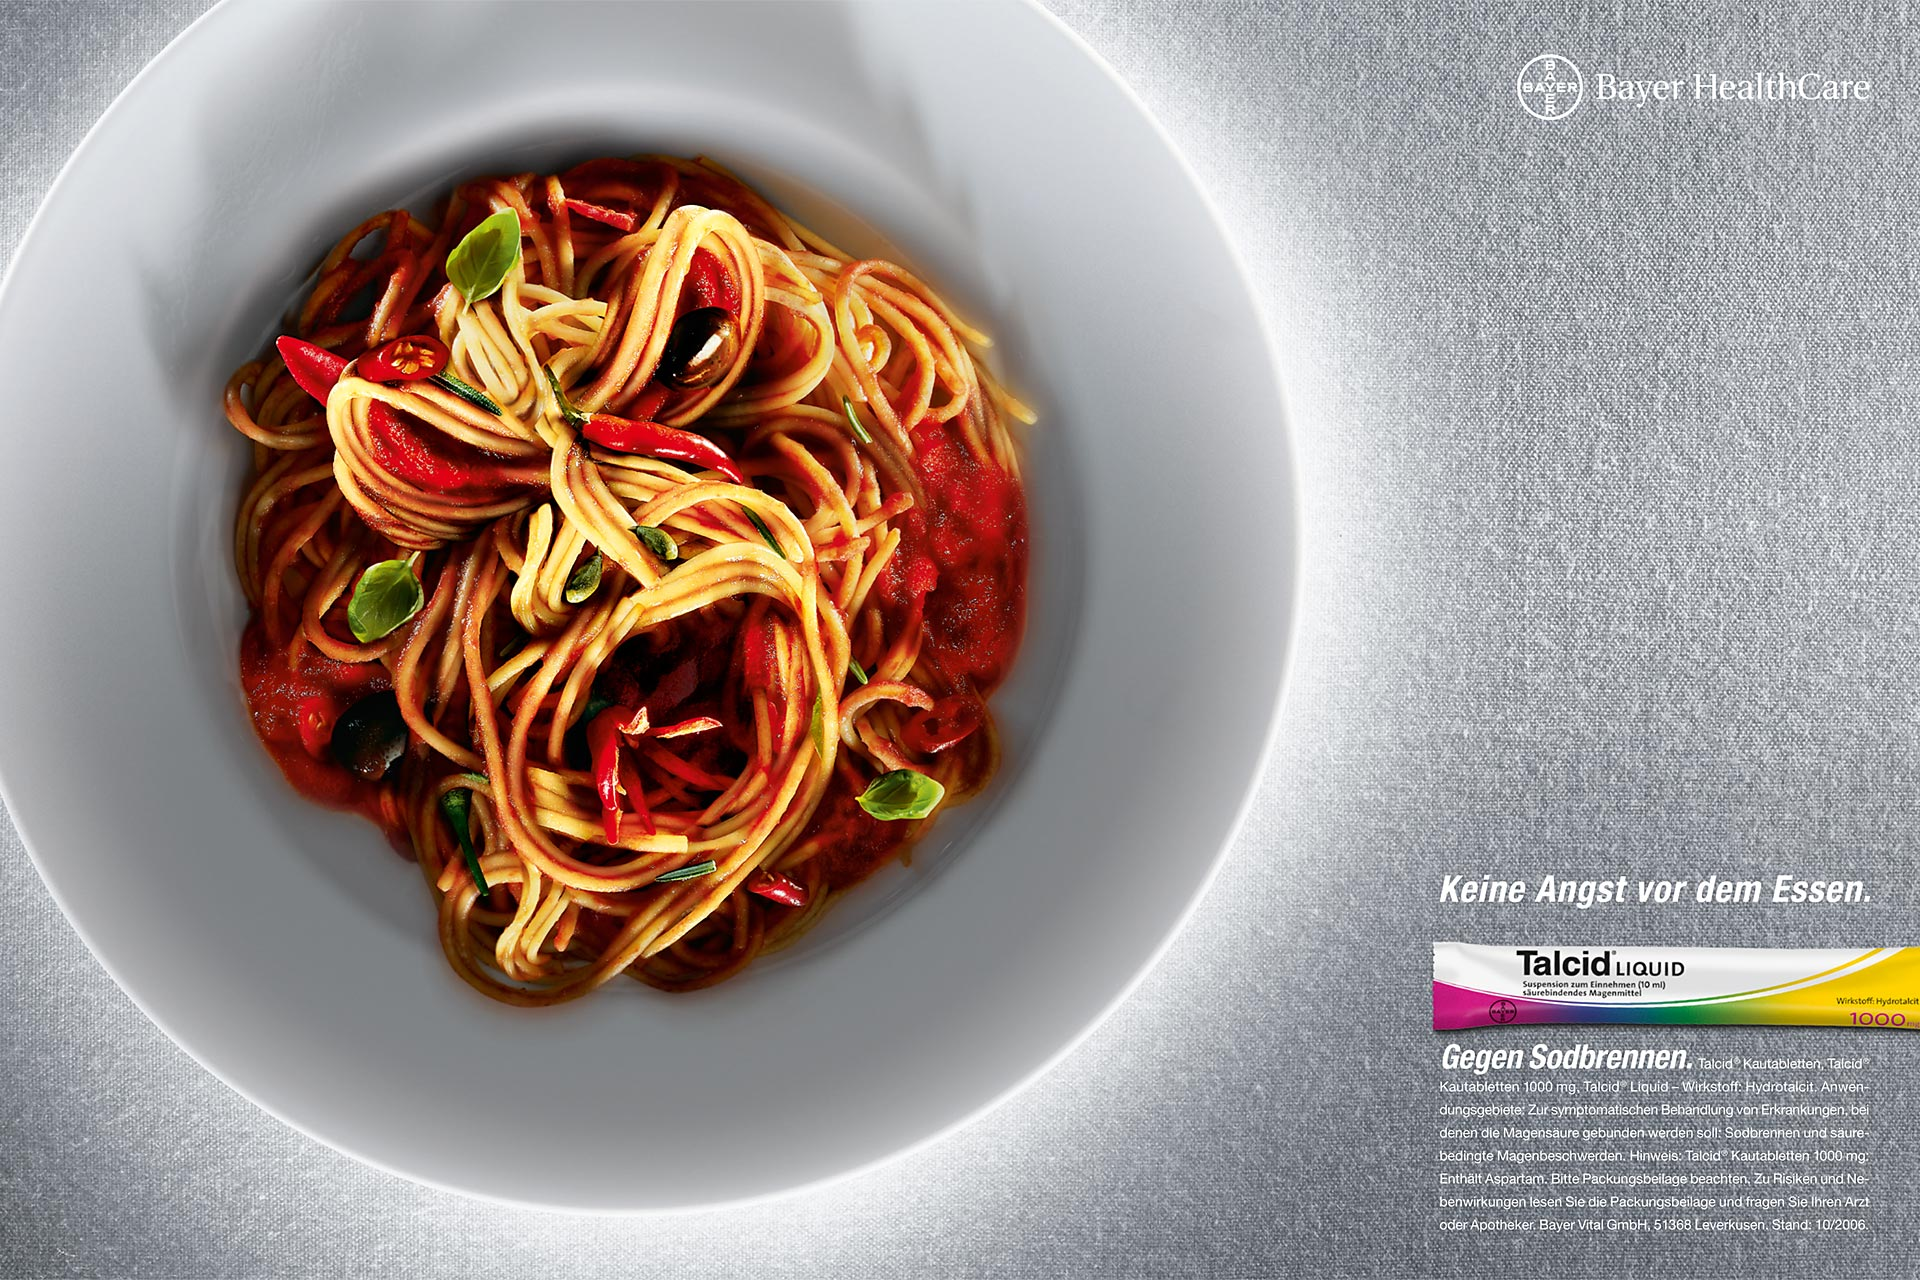 Sabine-Scheer-food-photography-bayer-healthcare